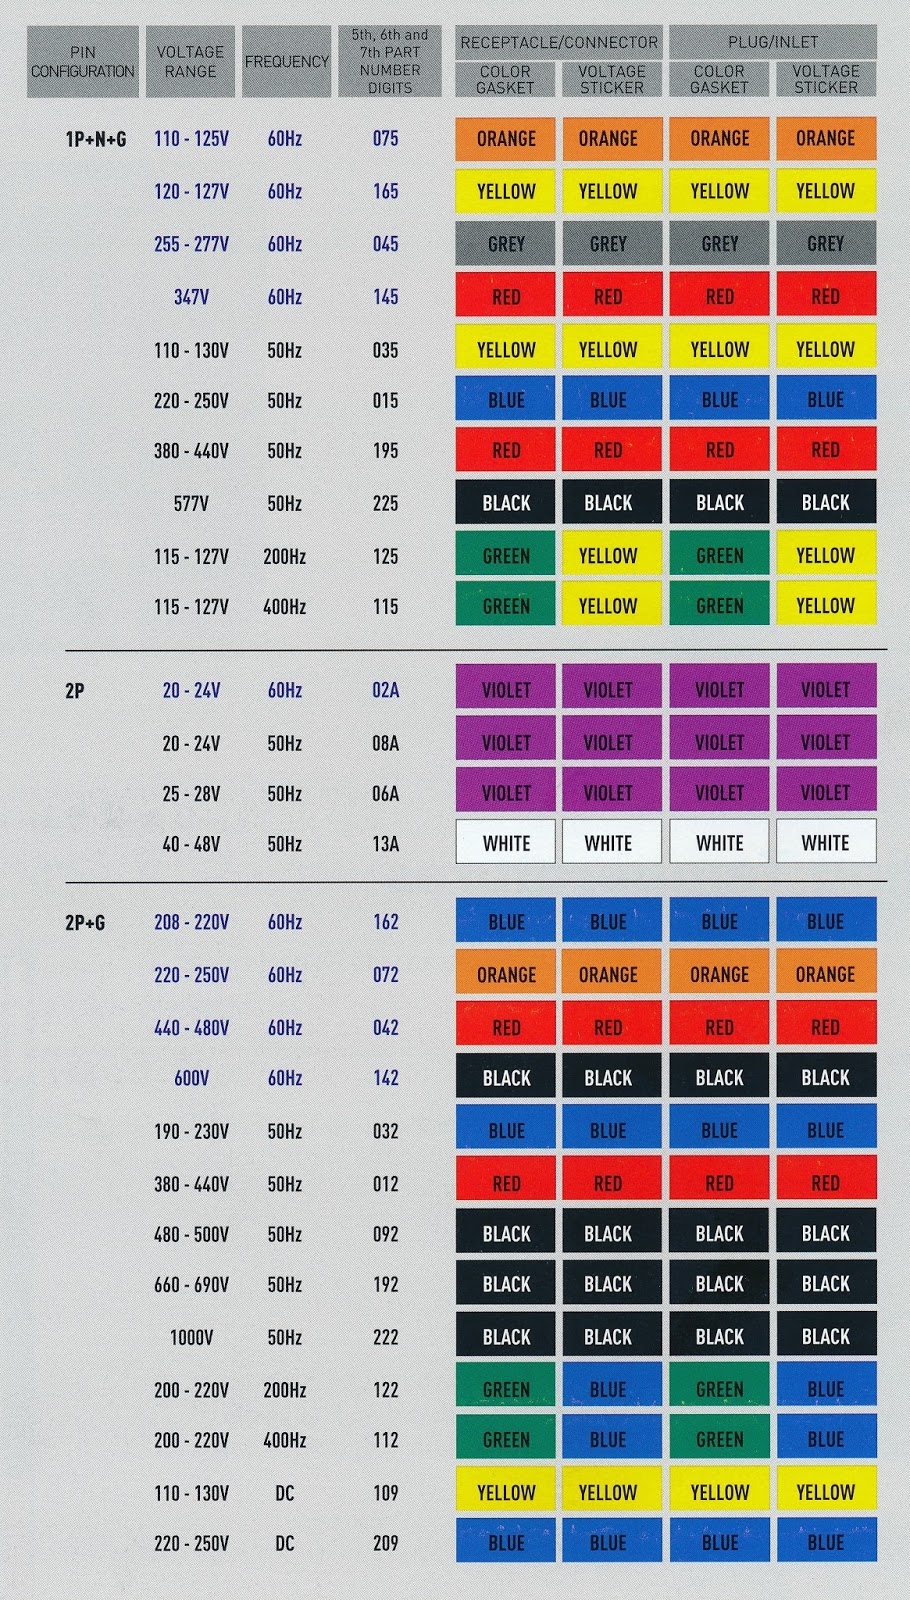 220 Volt Ac Wiring Color Code on 240 volt 4 wire wiring diagram